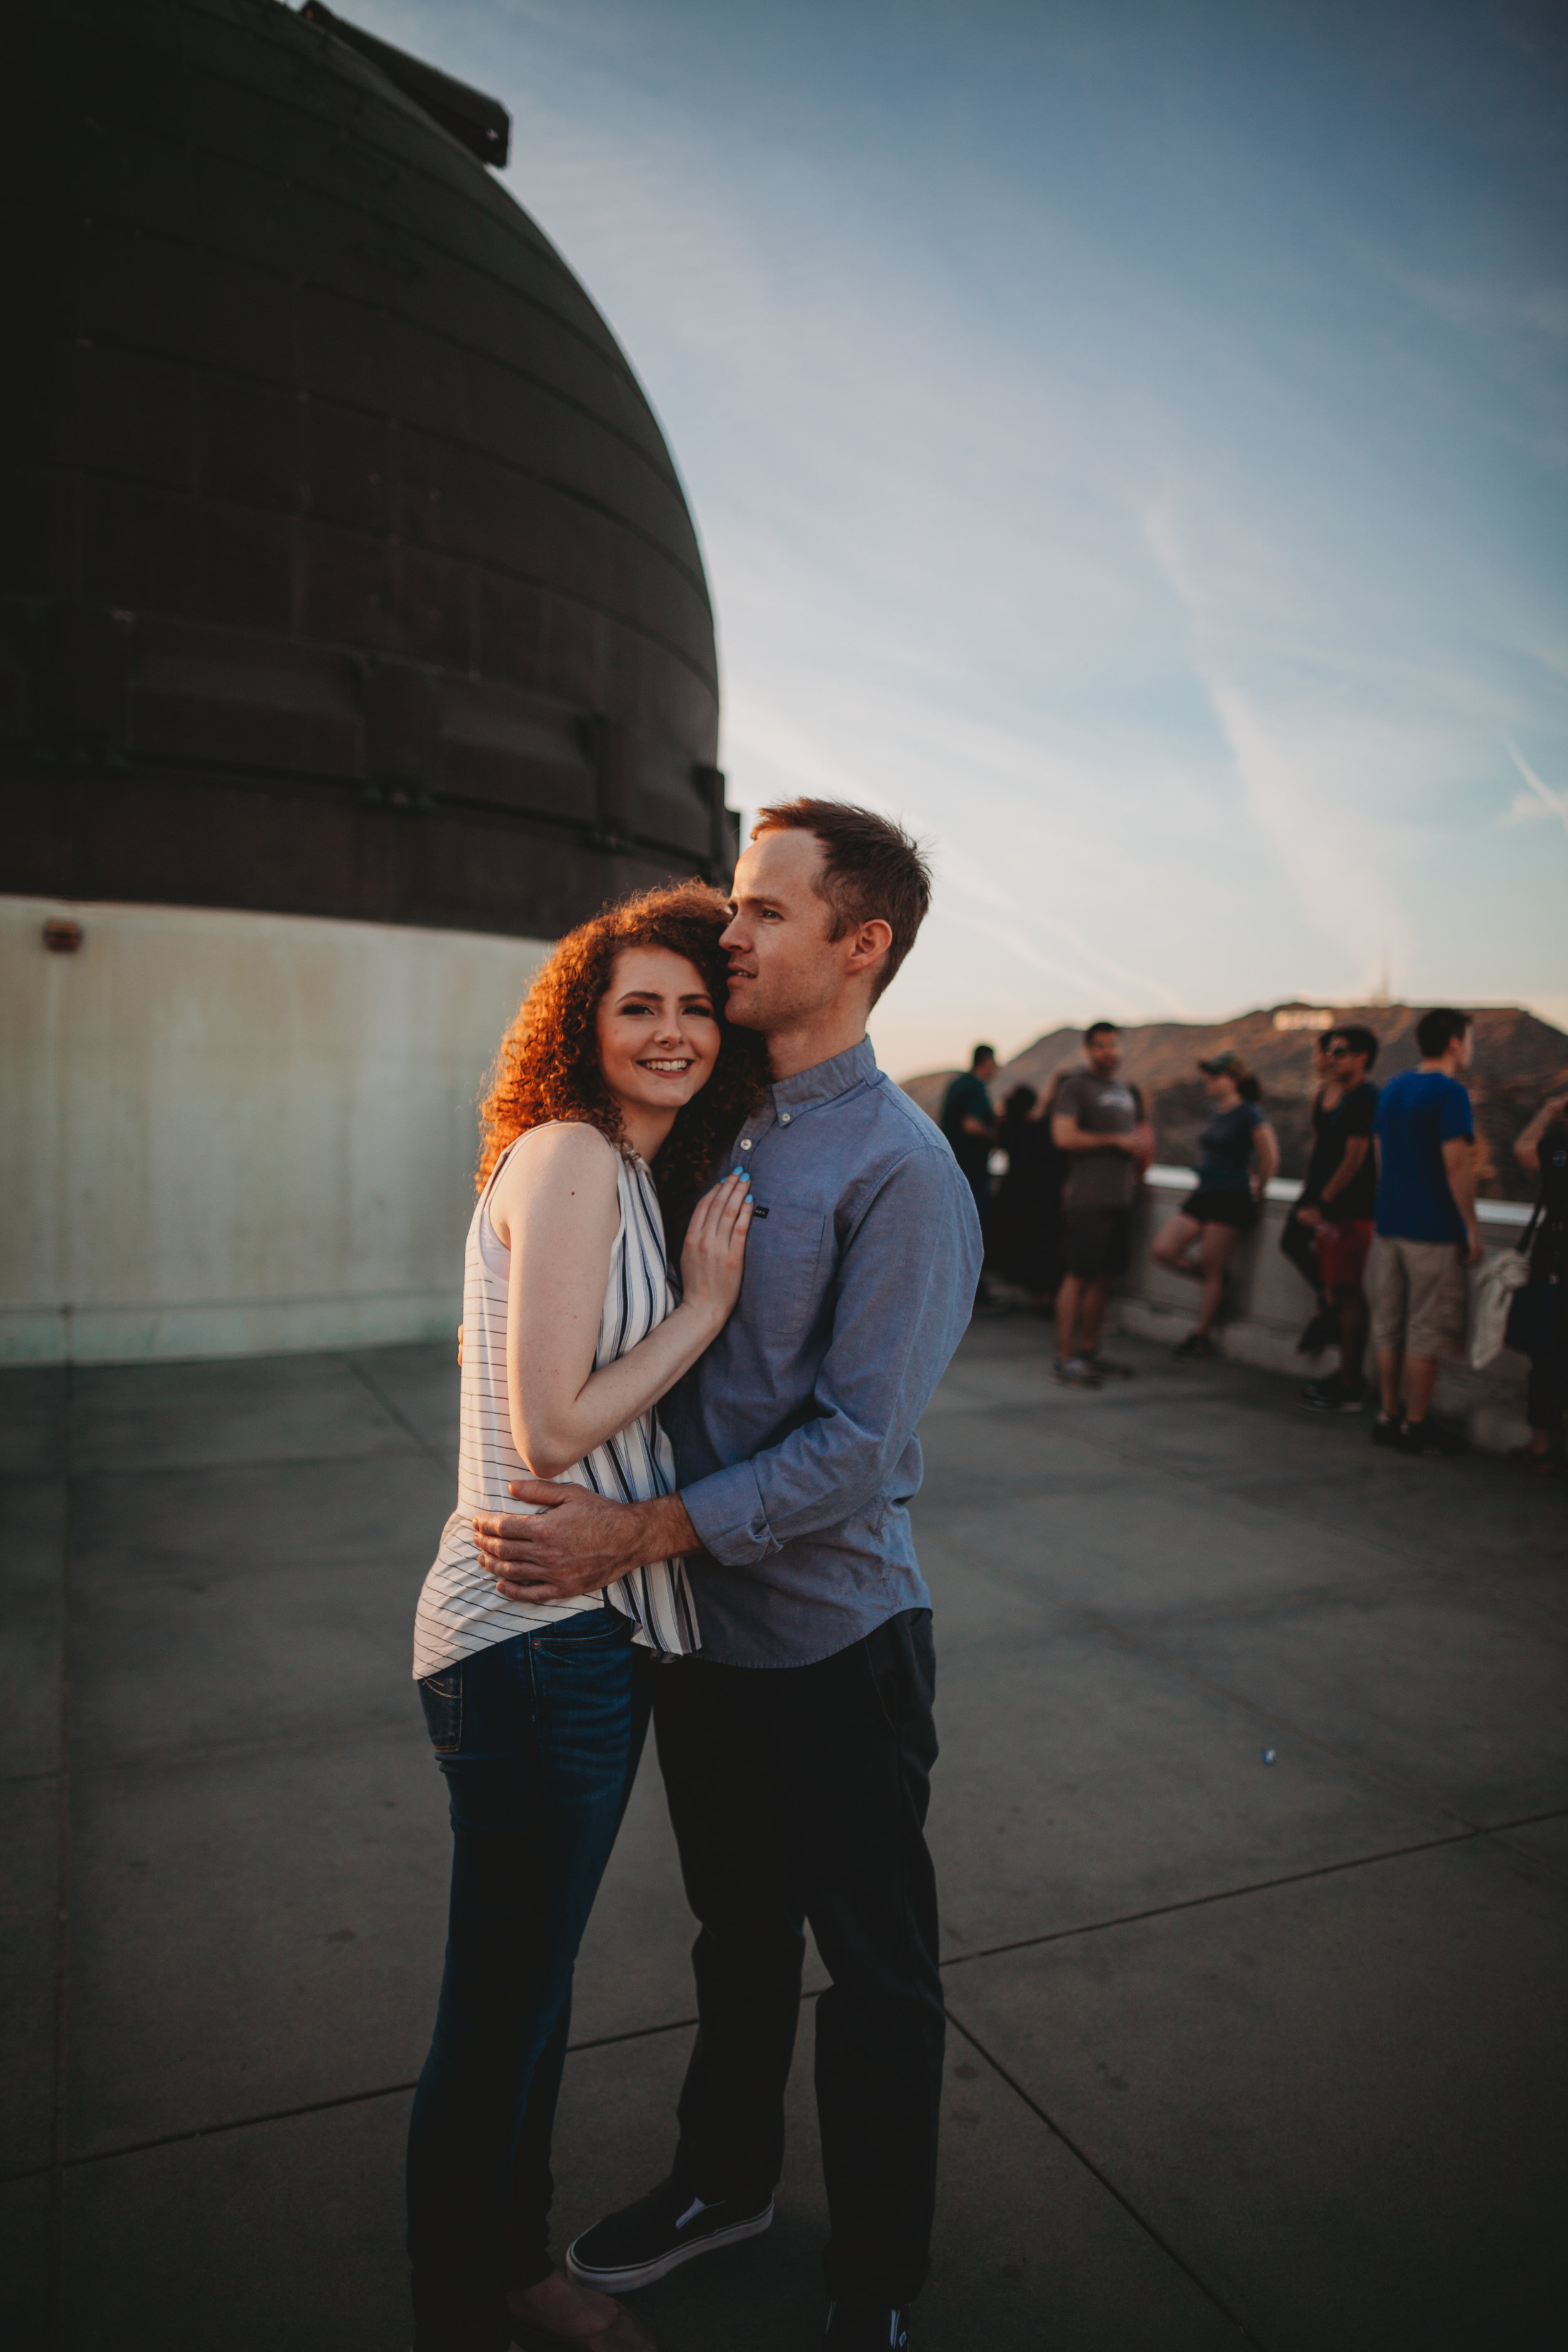 Griffith Park Observatory Engagement Photographer | Griffith Park Photographer | Los Angeles Wedding Photographer | Tida Svy | www.tidasvy.com